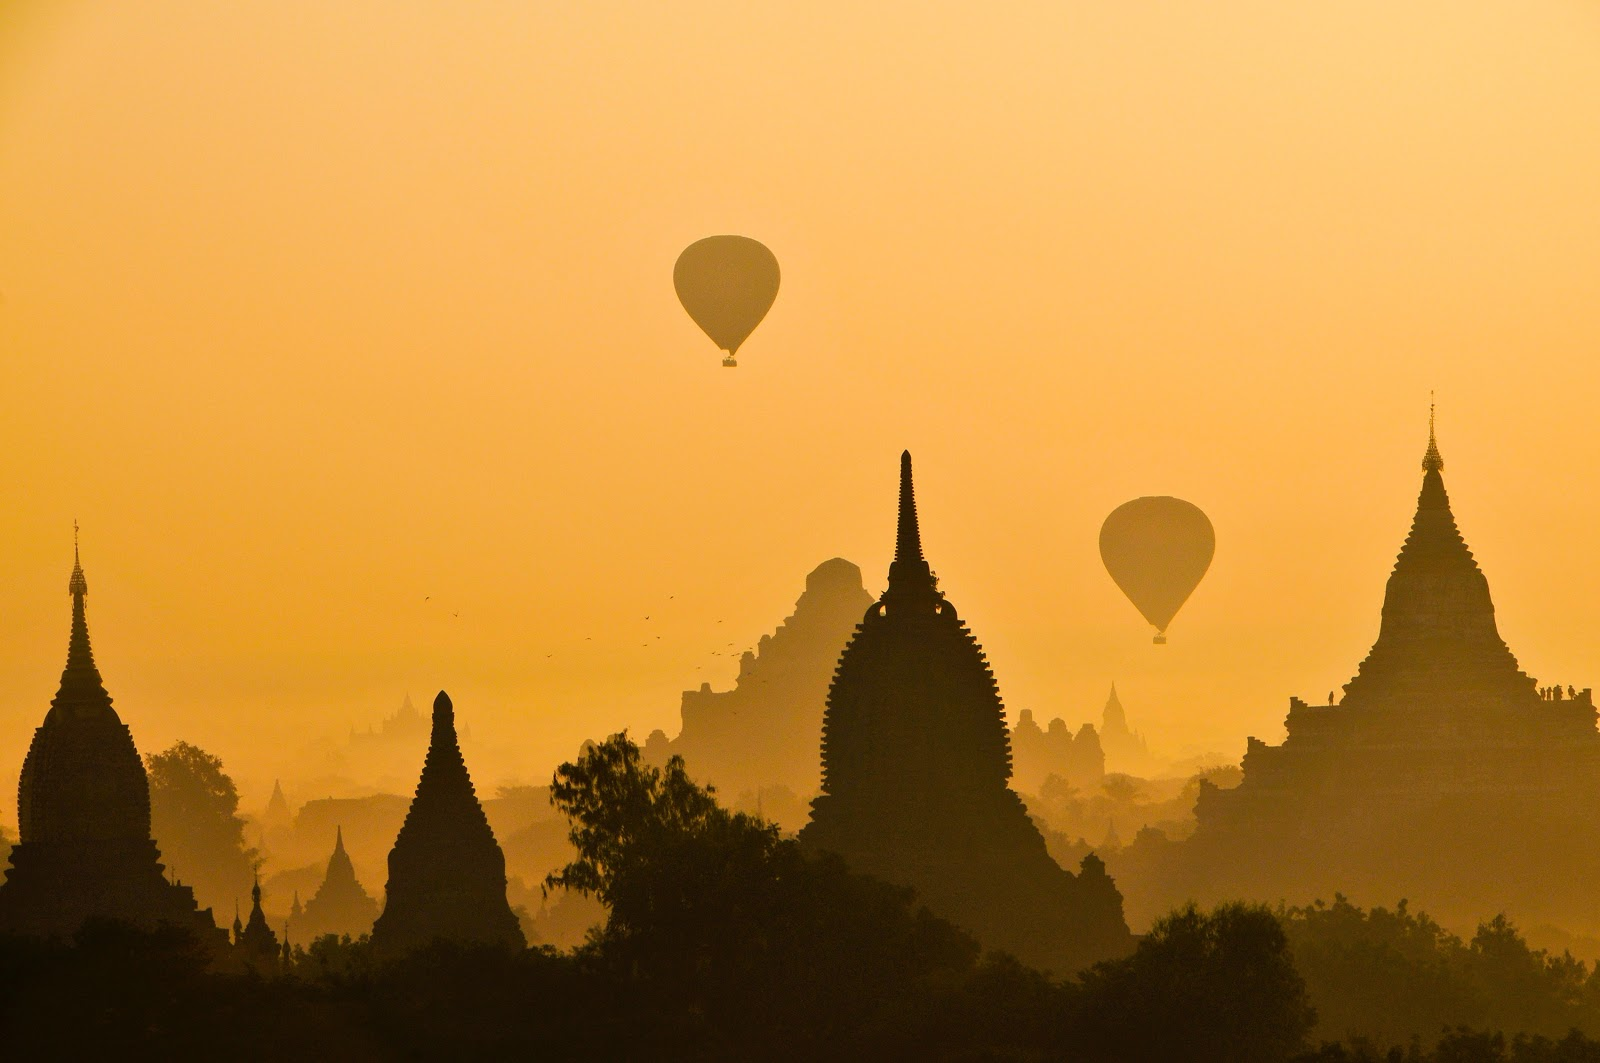 hot air balloons lifting into the sky against a backdrop of pagodas